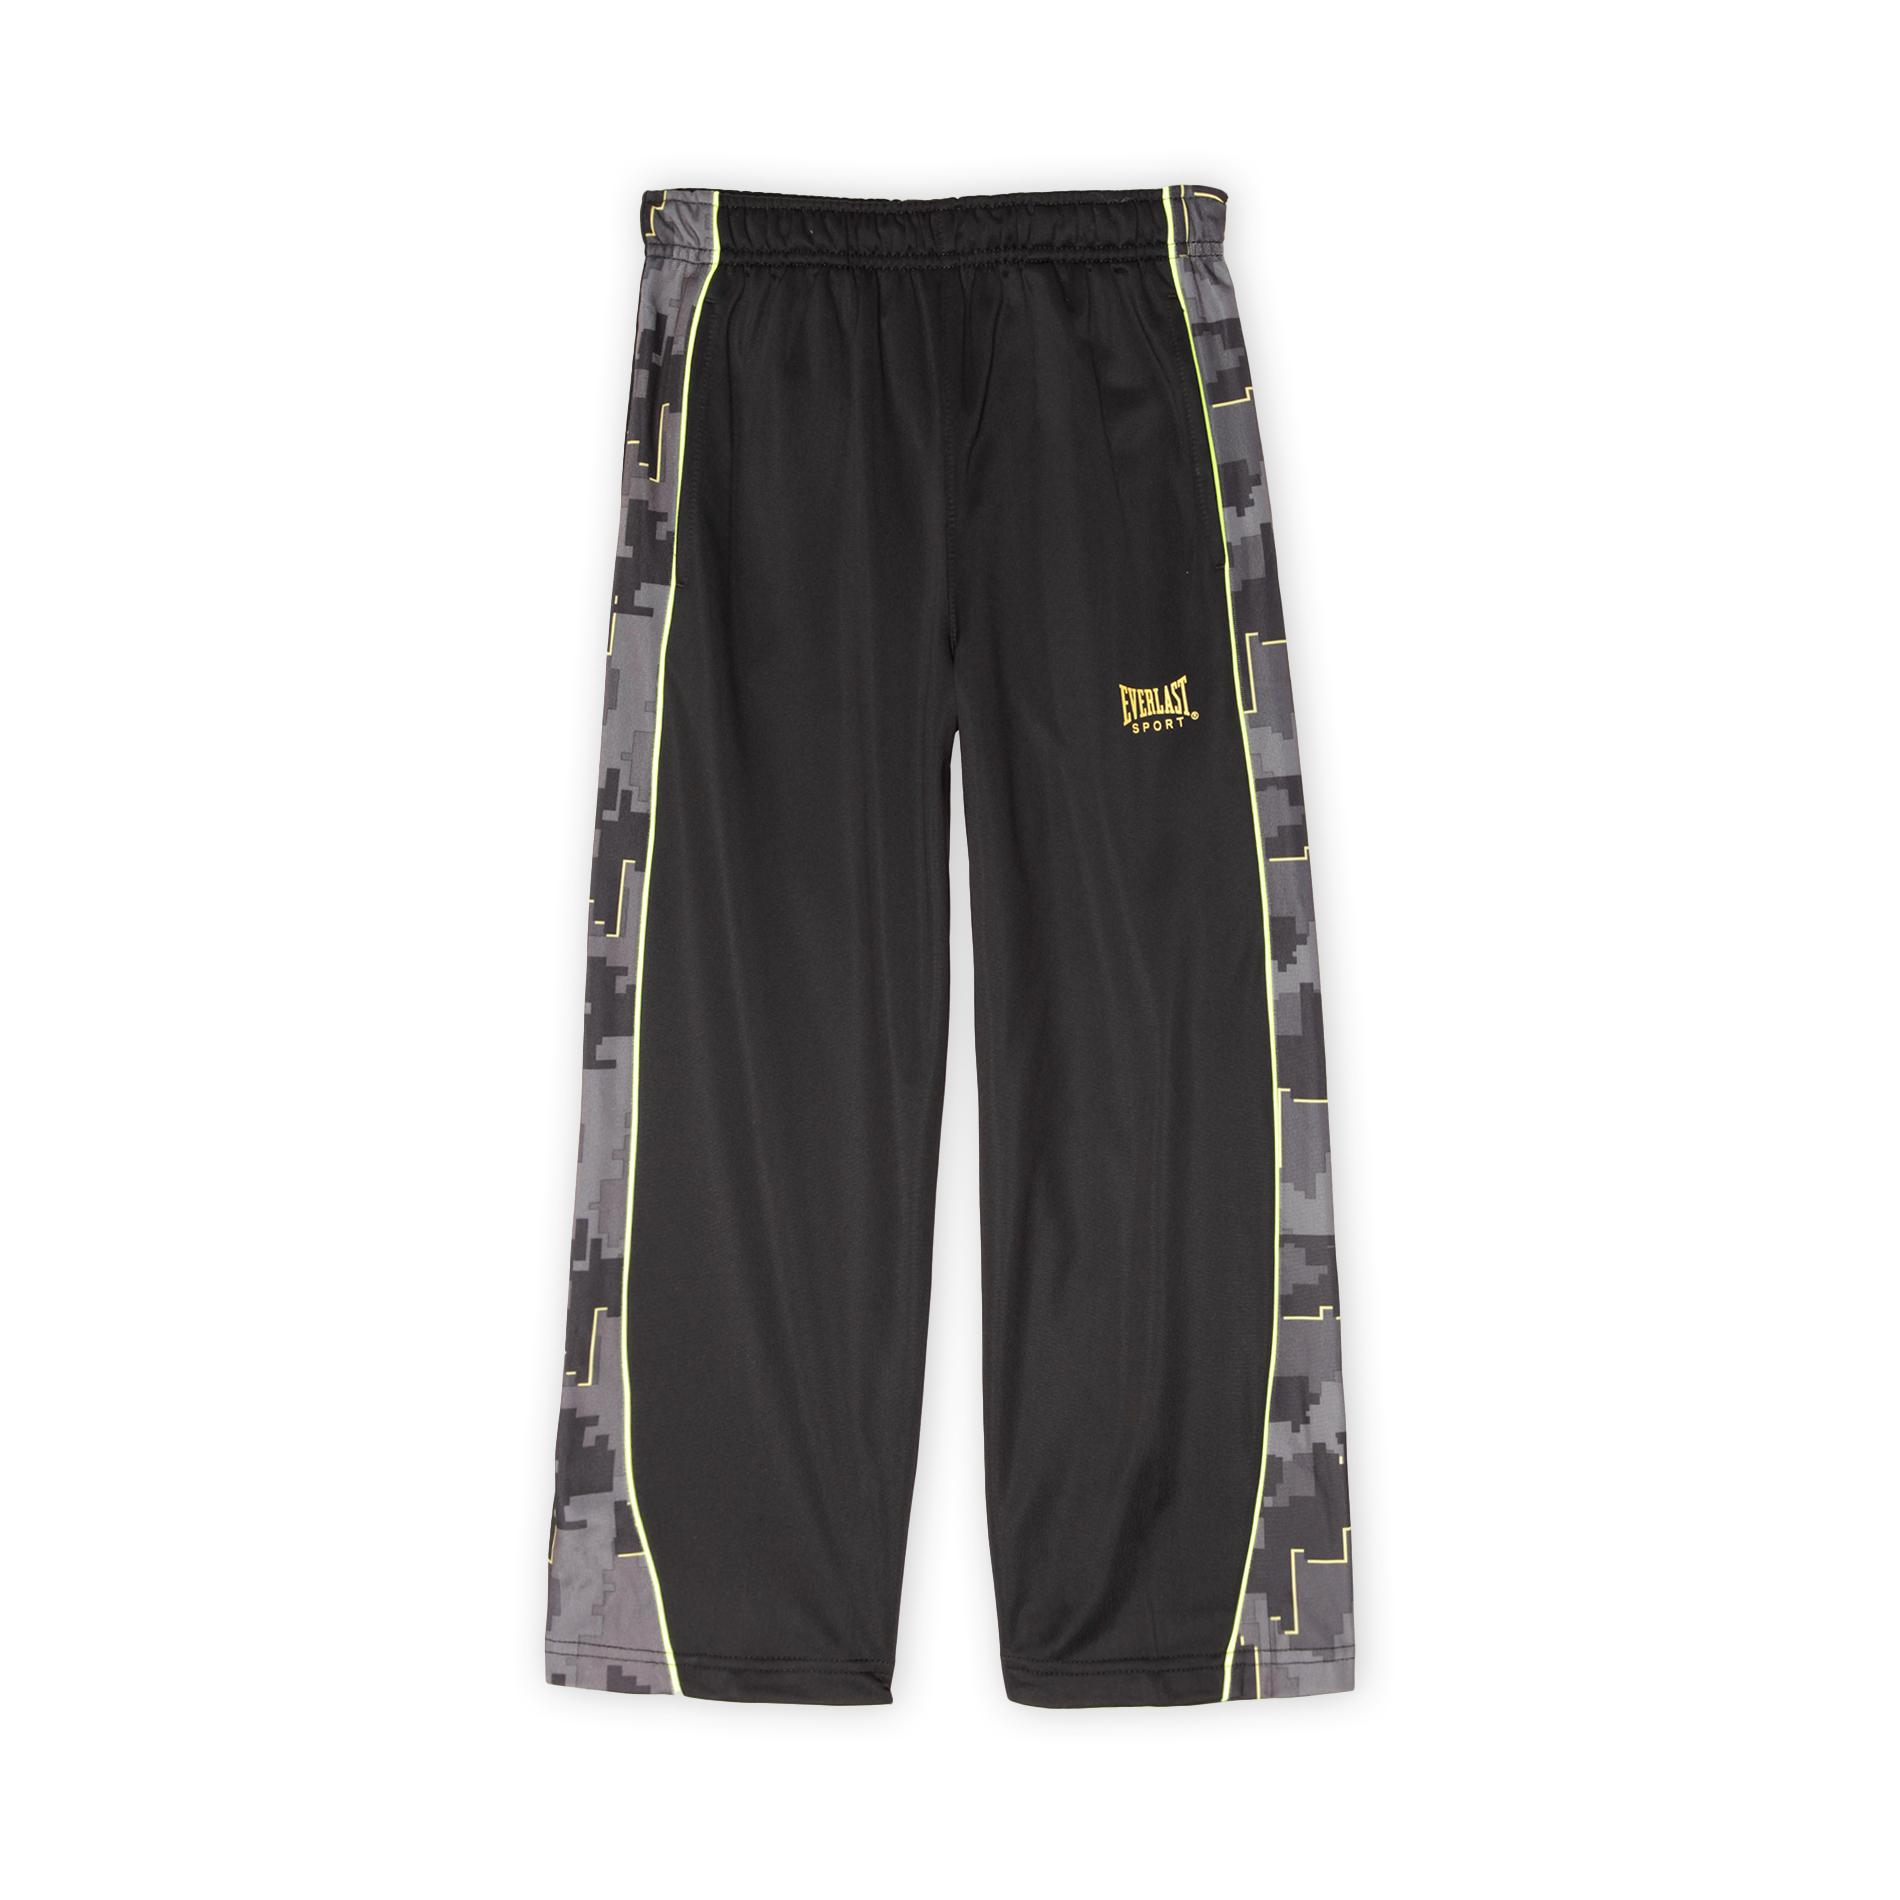 Everlast® Sport Boy's Tricot Athletic Pants - Camouflage at Kmart.com